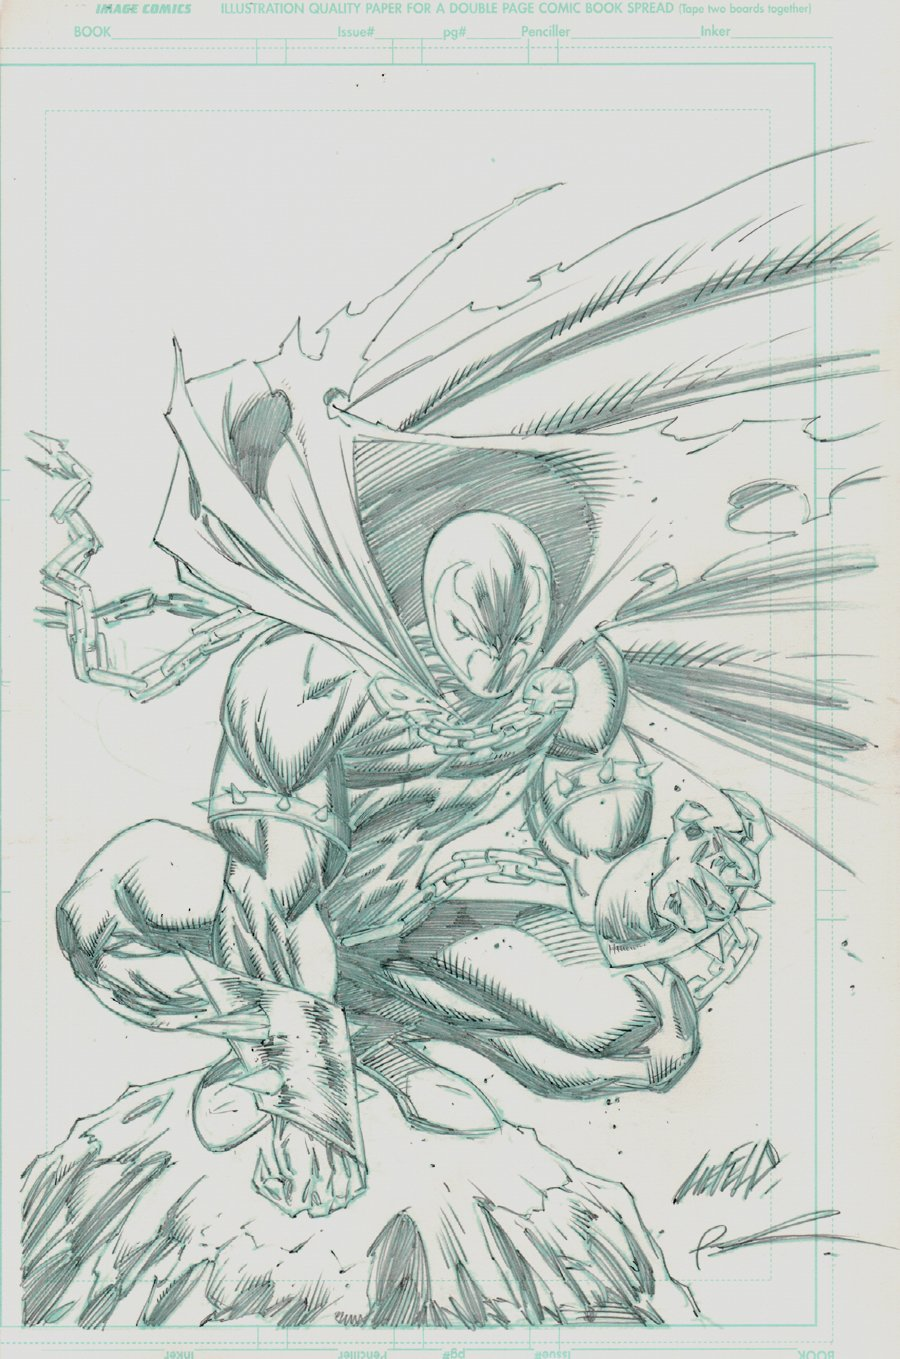 Spawn #200 Cover (2010)